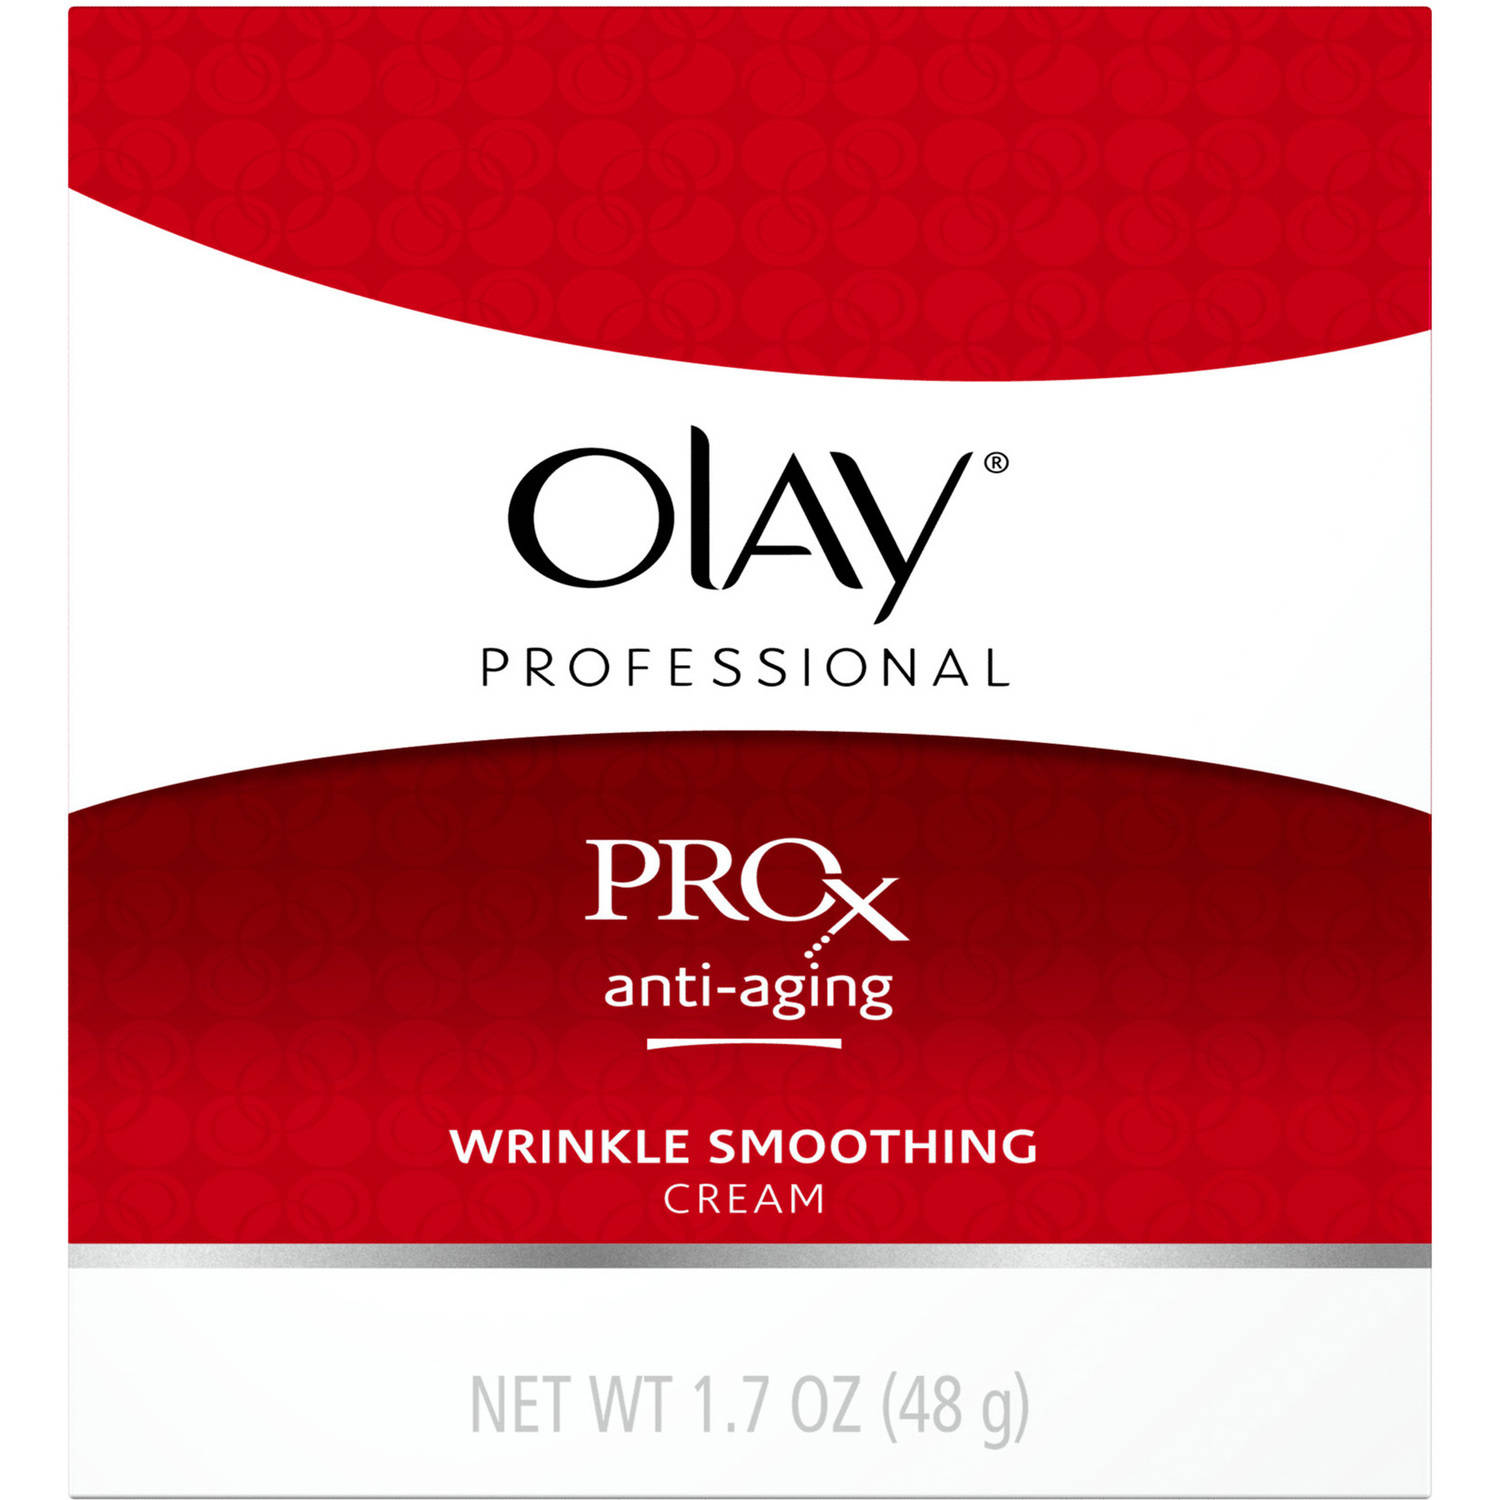 Olay Professional Pro-X Wrinkle Facial Smoothing Cream Anti Aging 1.7 Oz